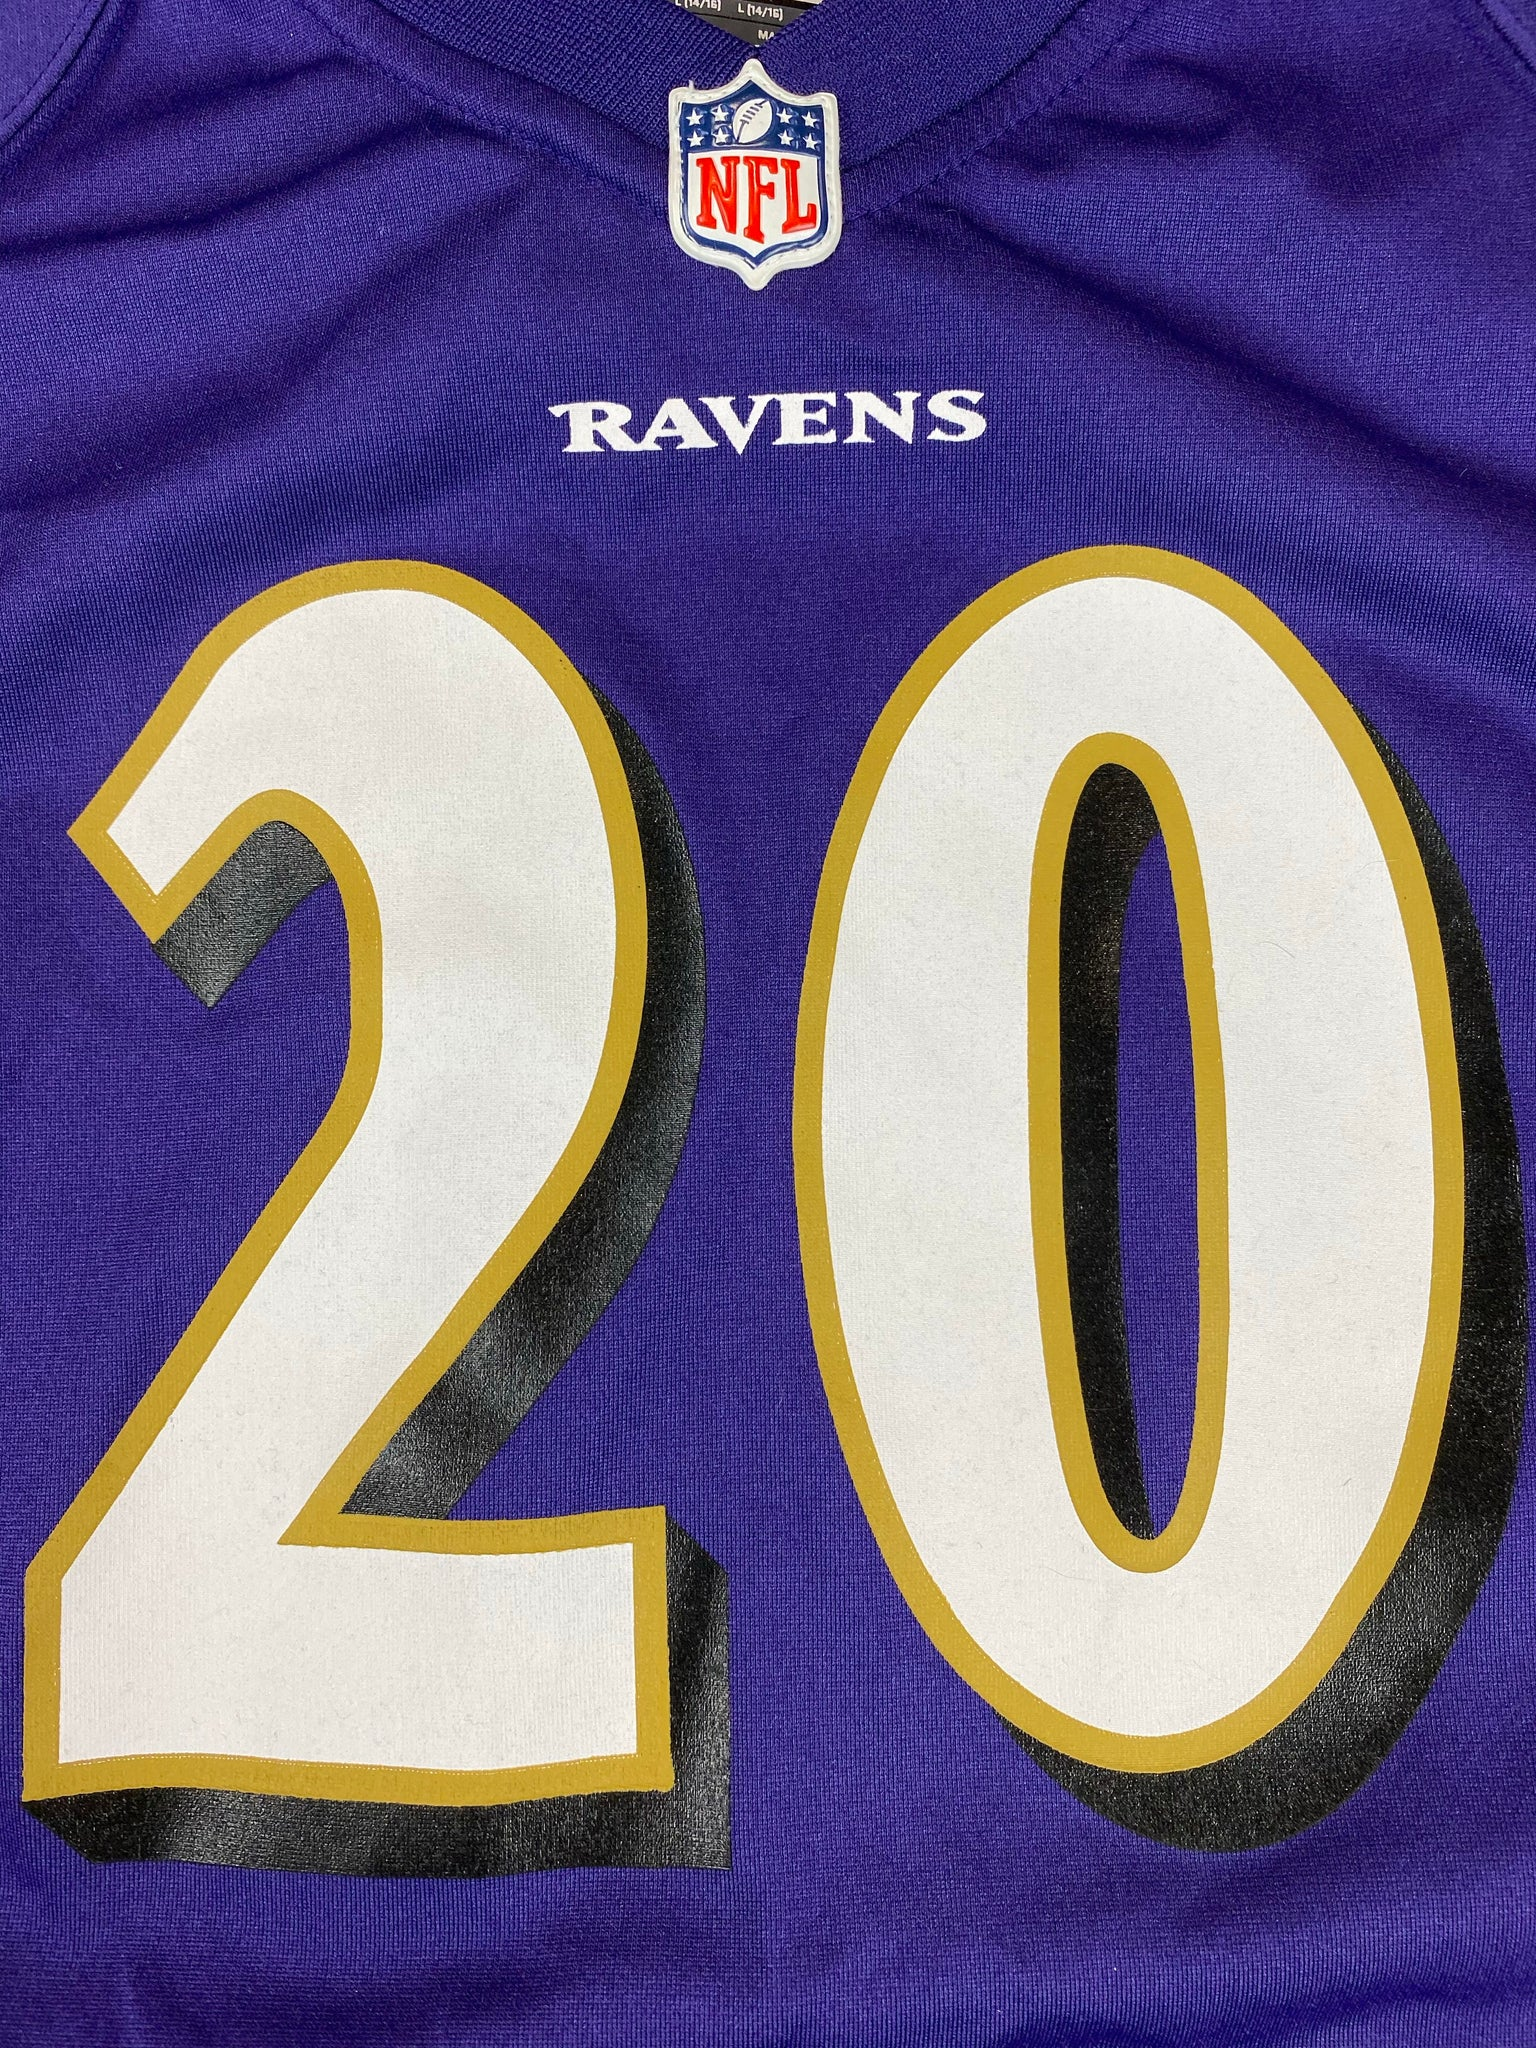 Nike Baltimore Ravens Ed Reed NFL jersey (YL/S) – The Retro Recovery